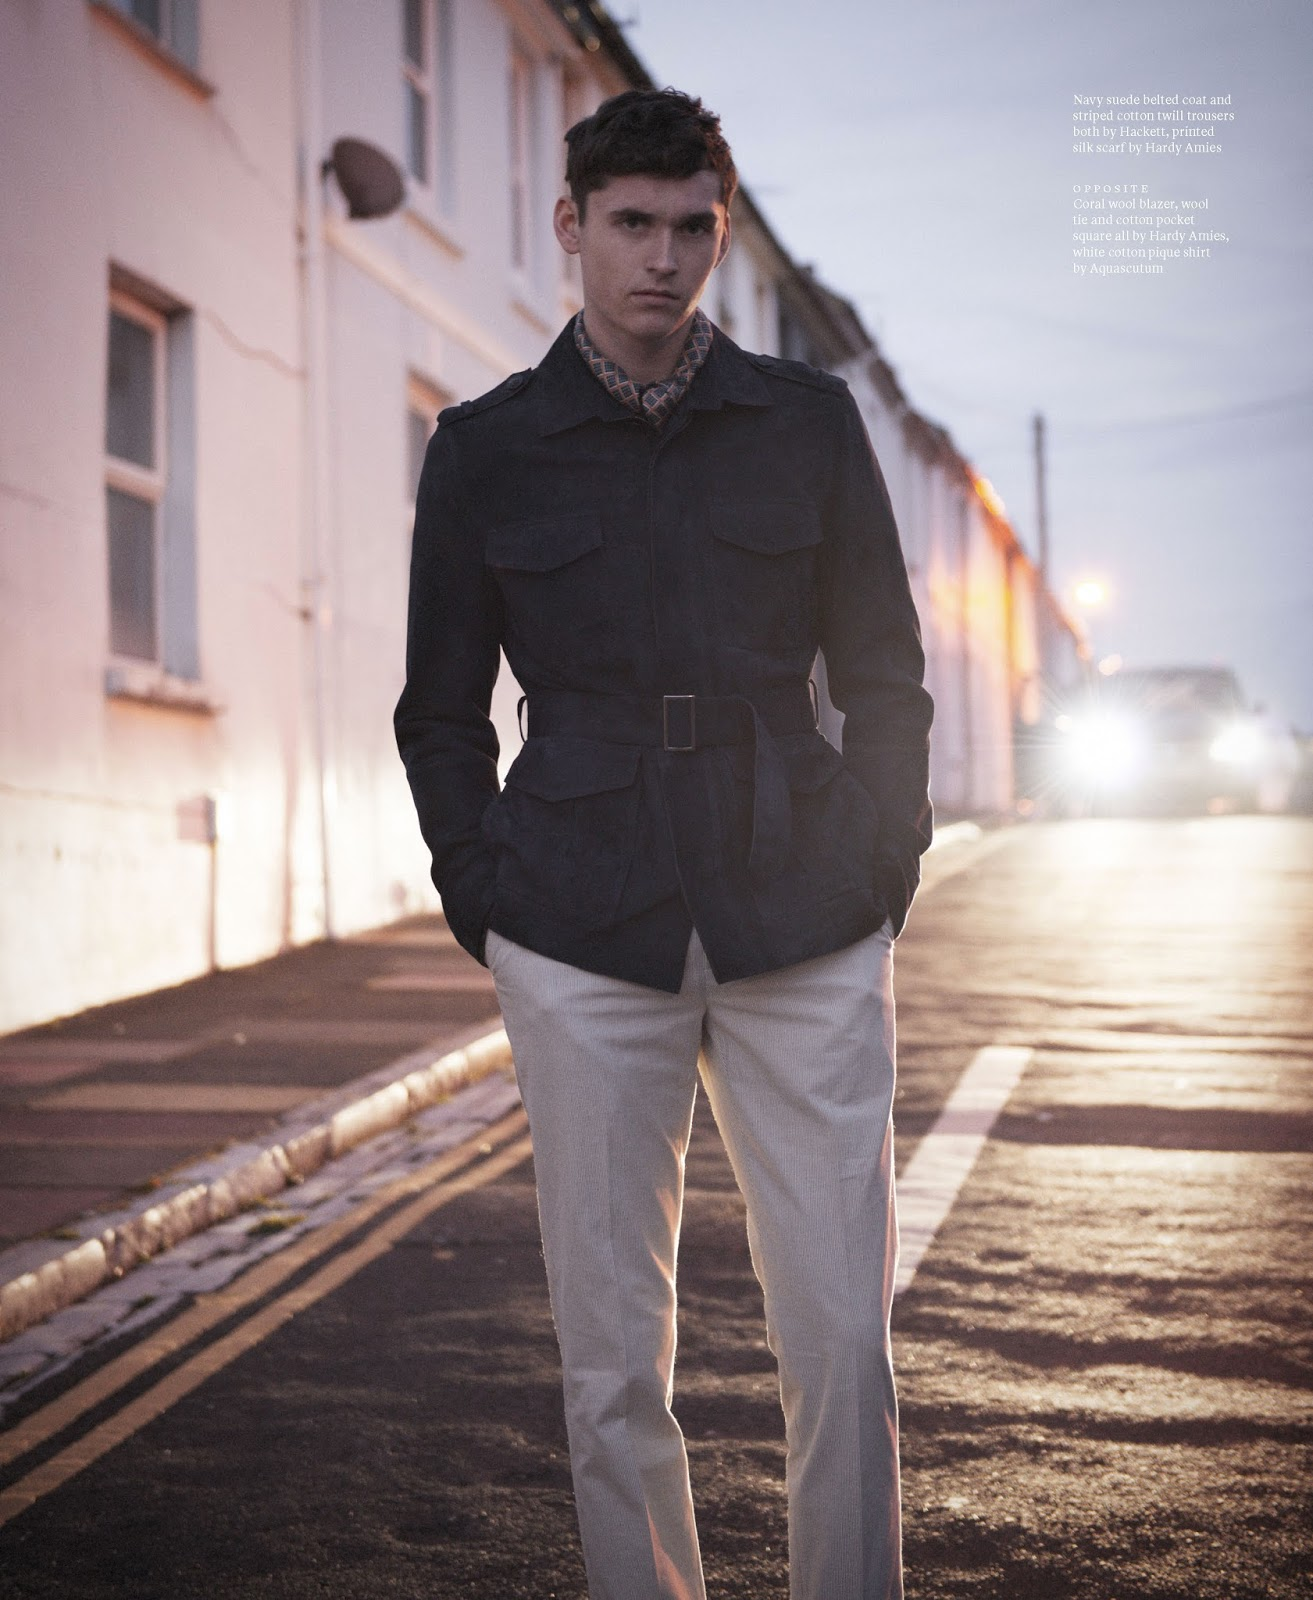 Anders Hayward Models Chic Tailored Styles for Article Editorial